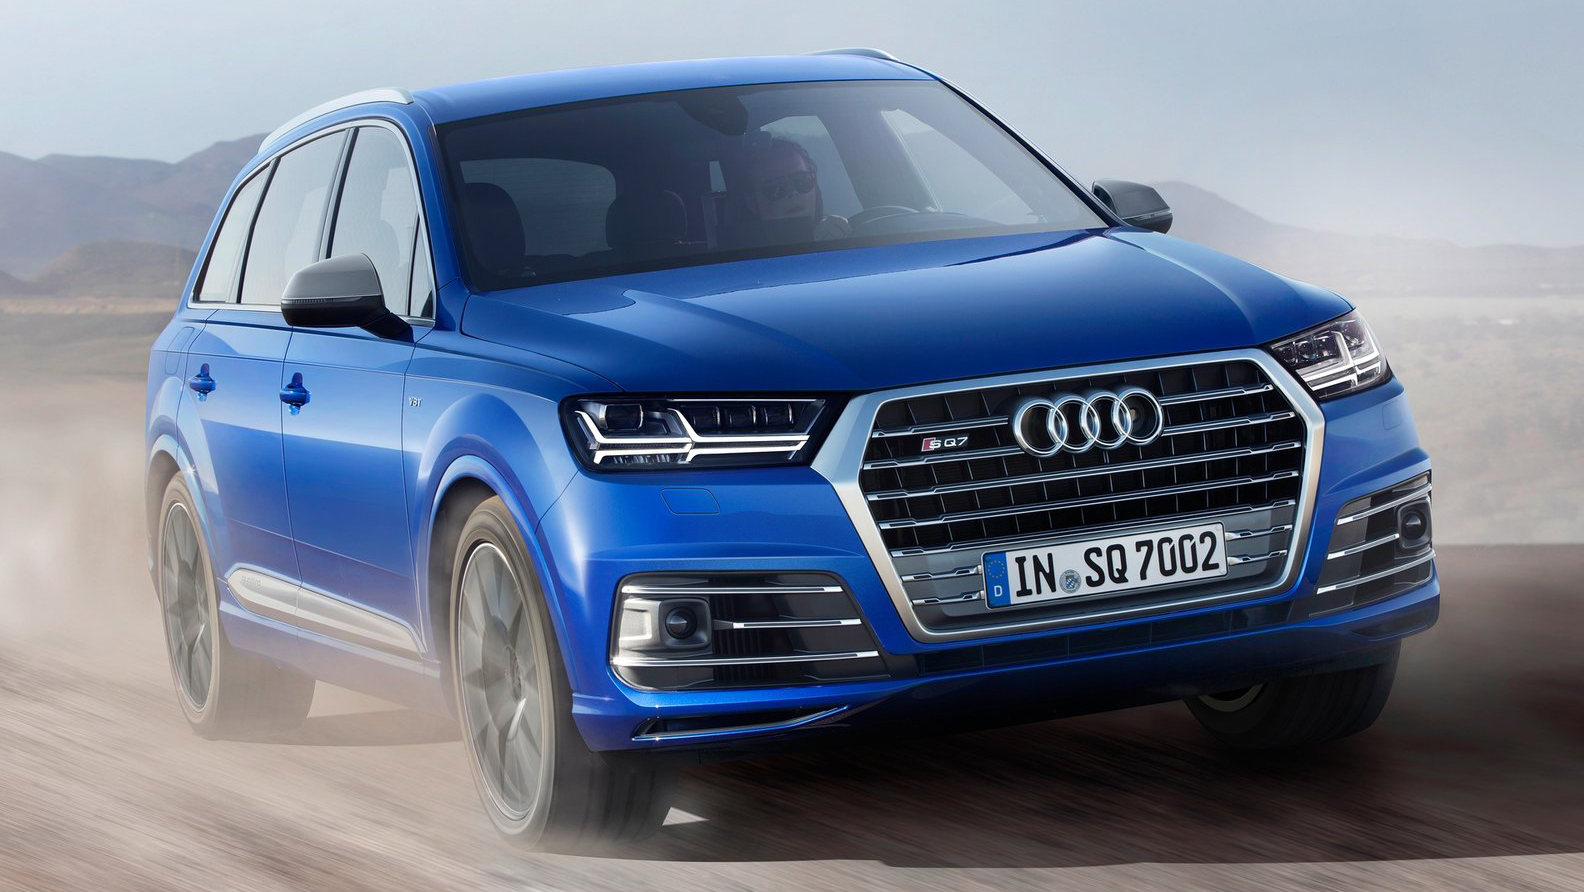 Want to drive your family at 150 mph? Check out the Audi SQ7